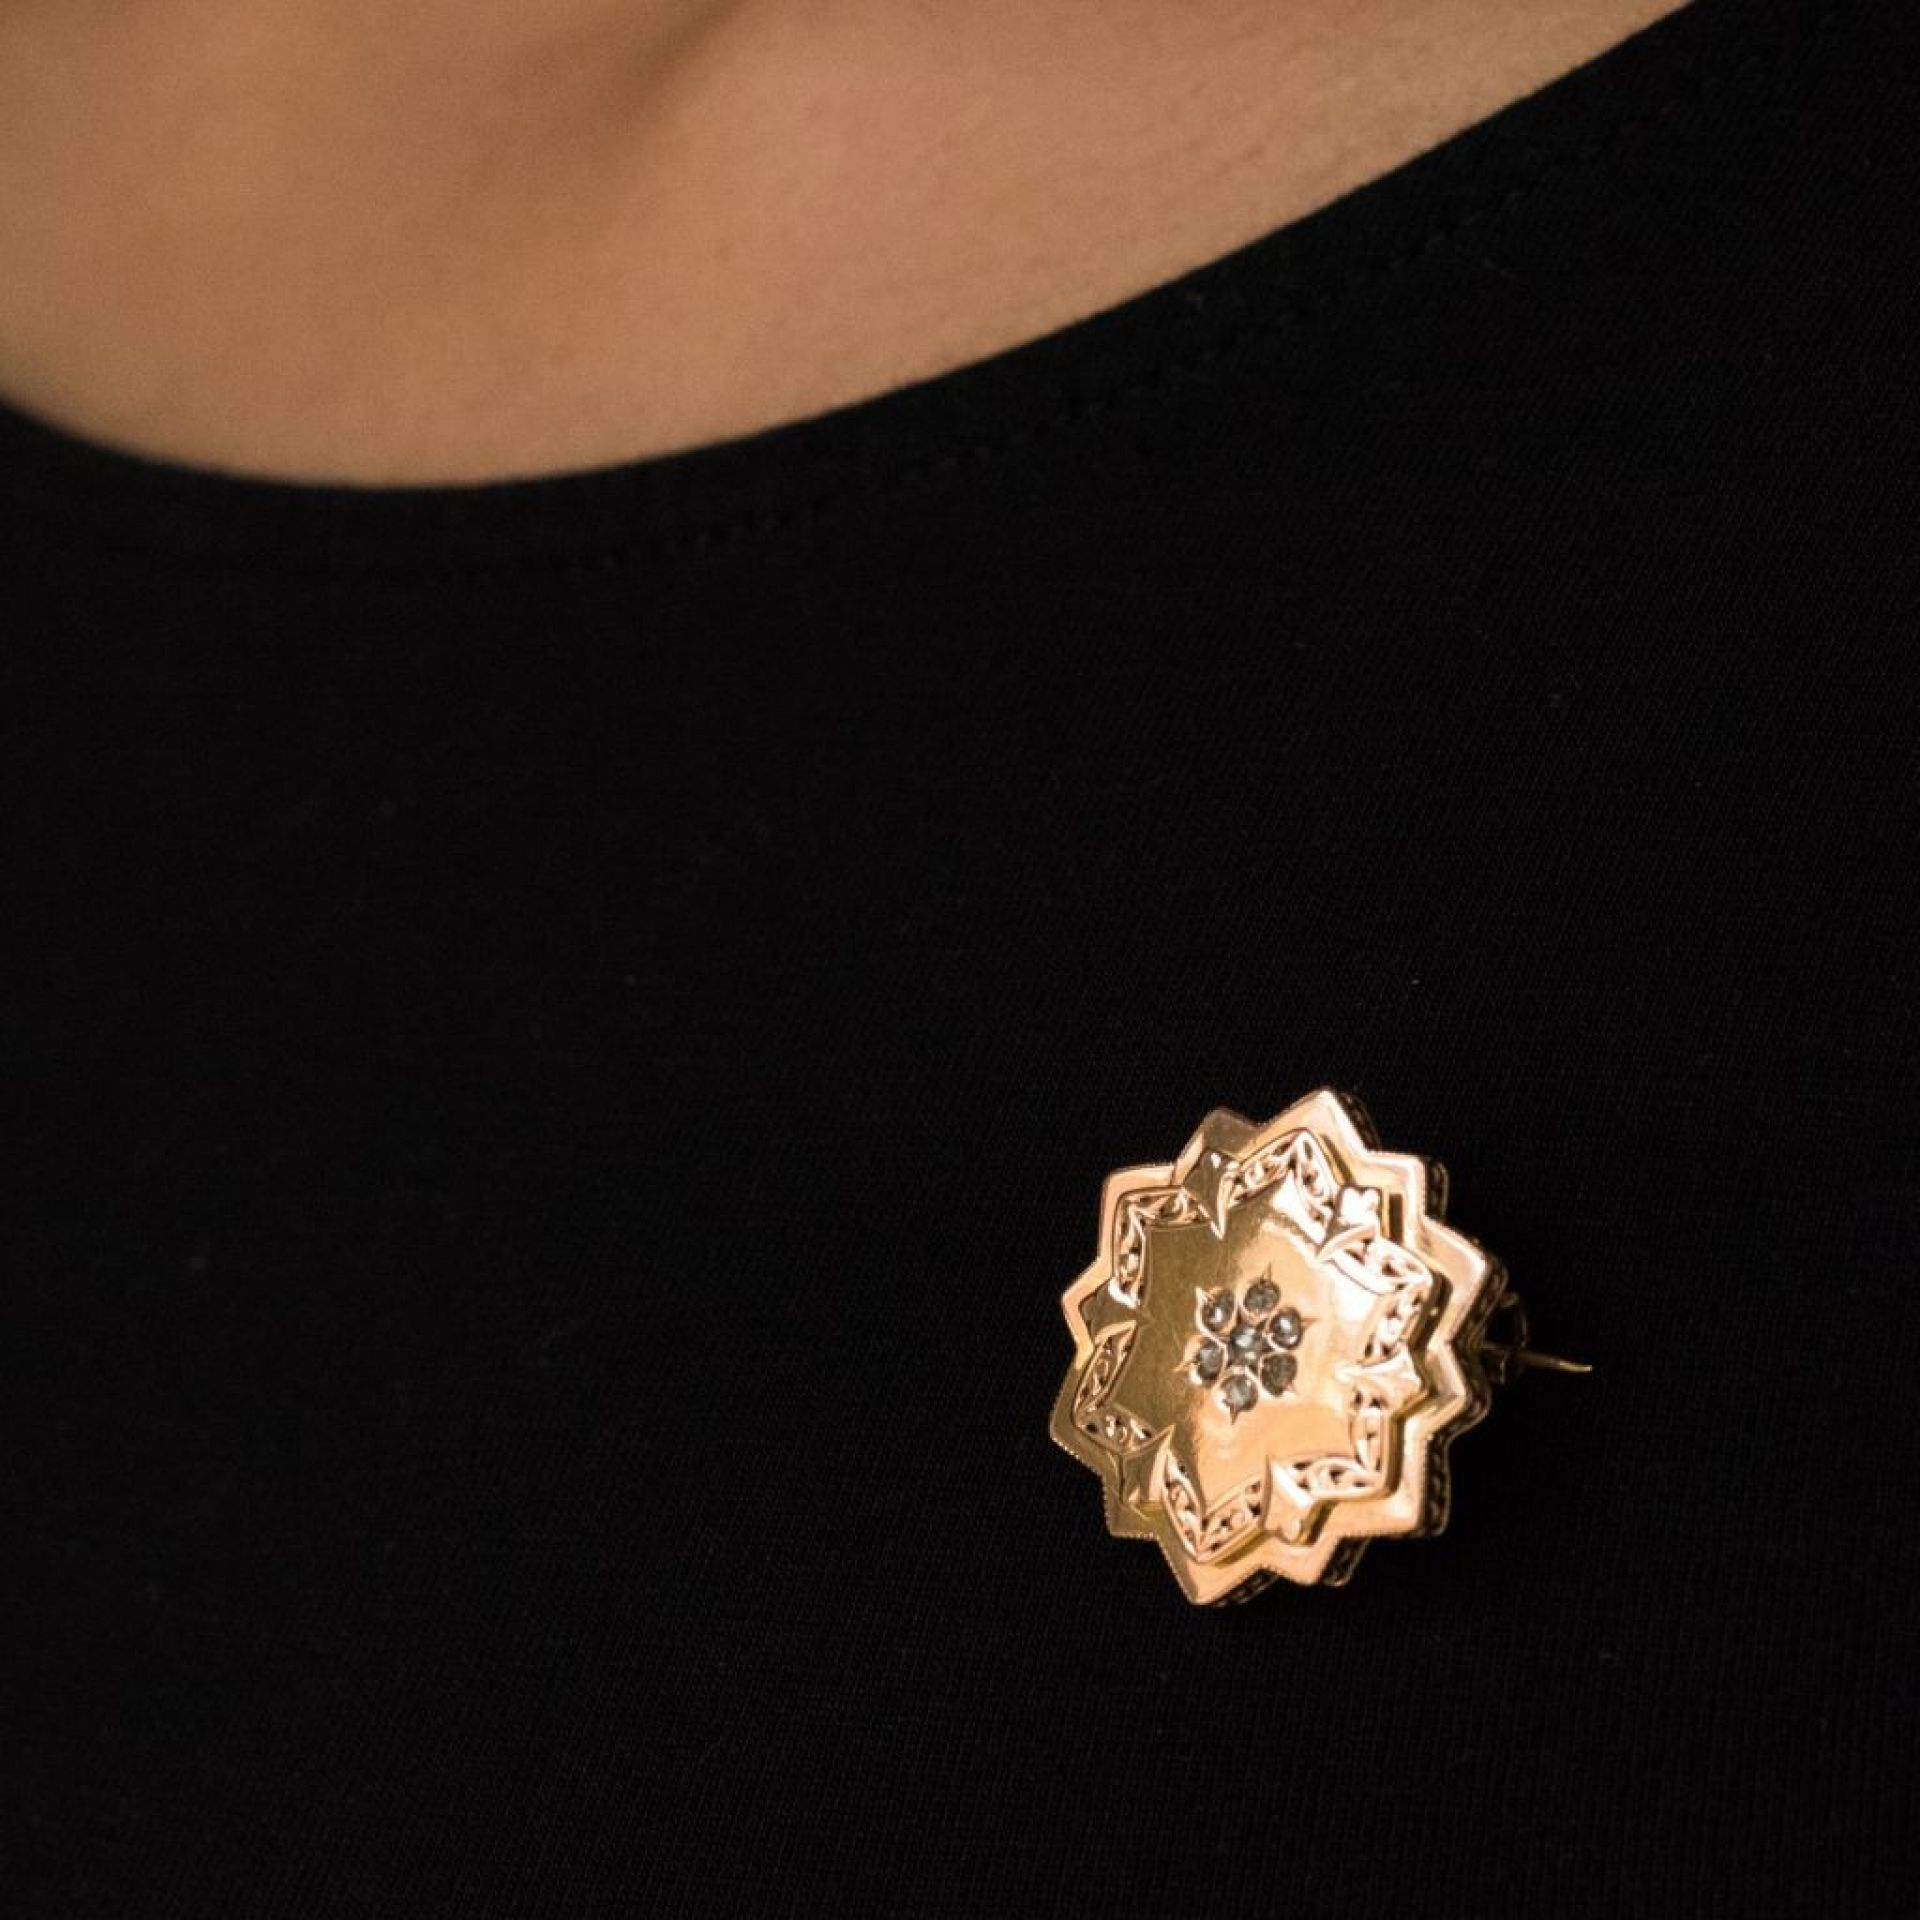 Old rose gold and diamonds brooch